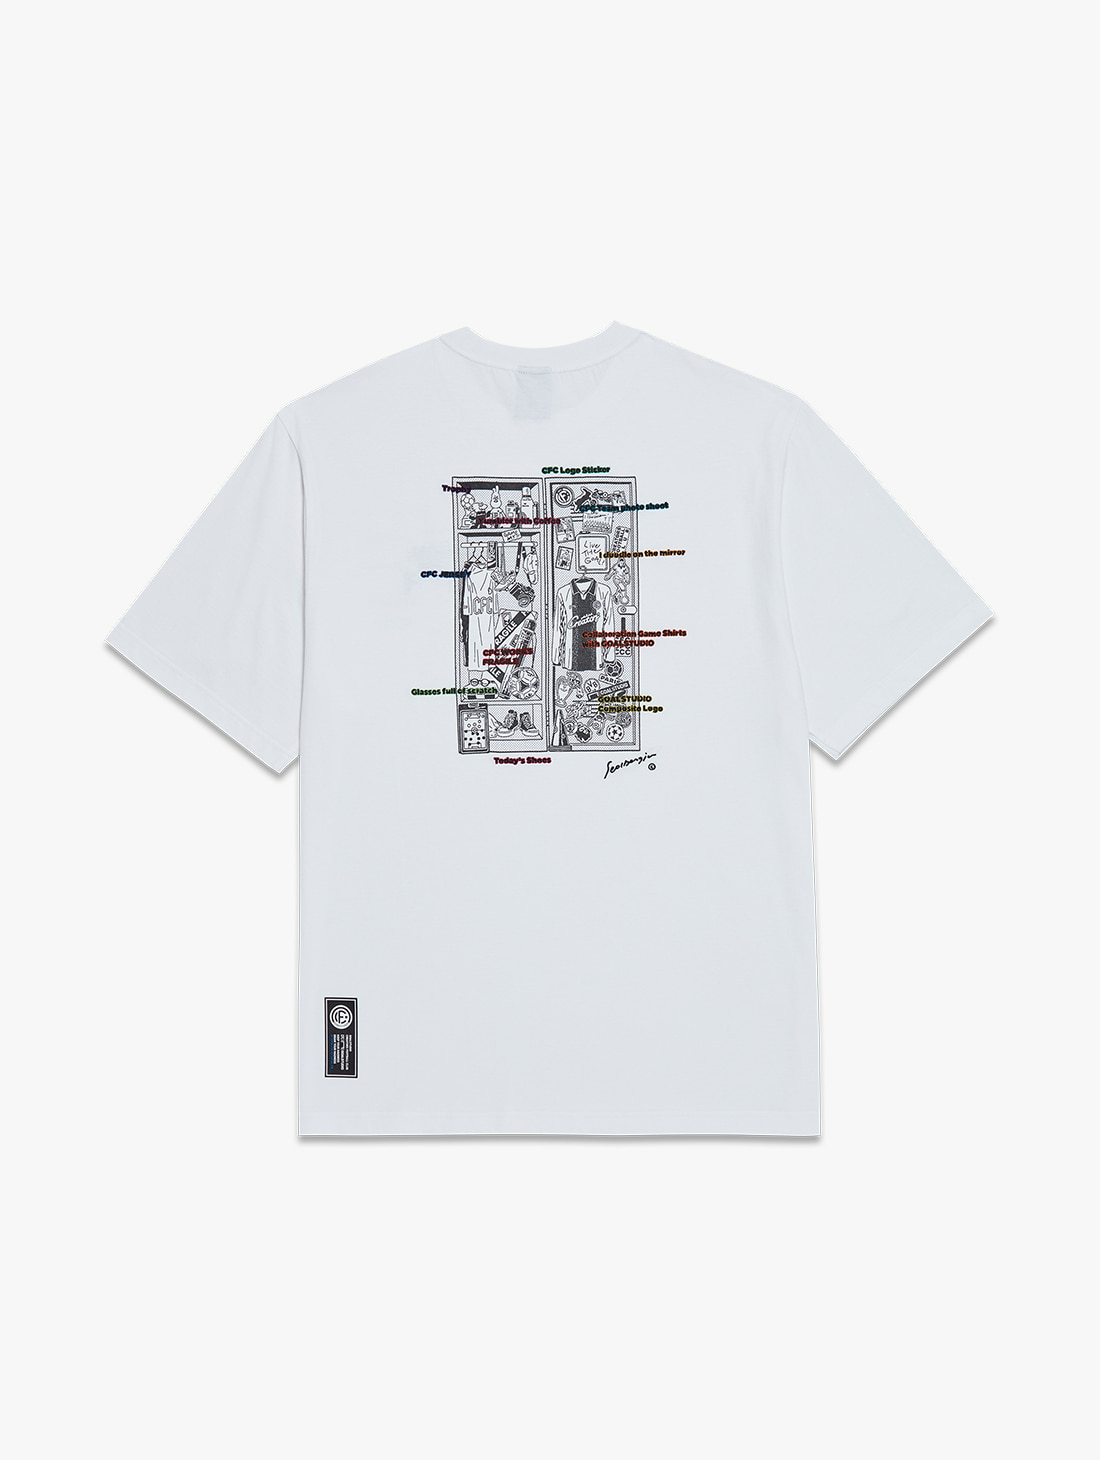 CFC LOCKER ROOM TEE (2 Colors)